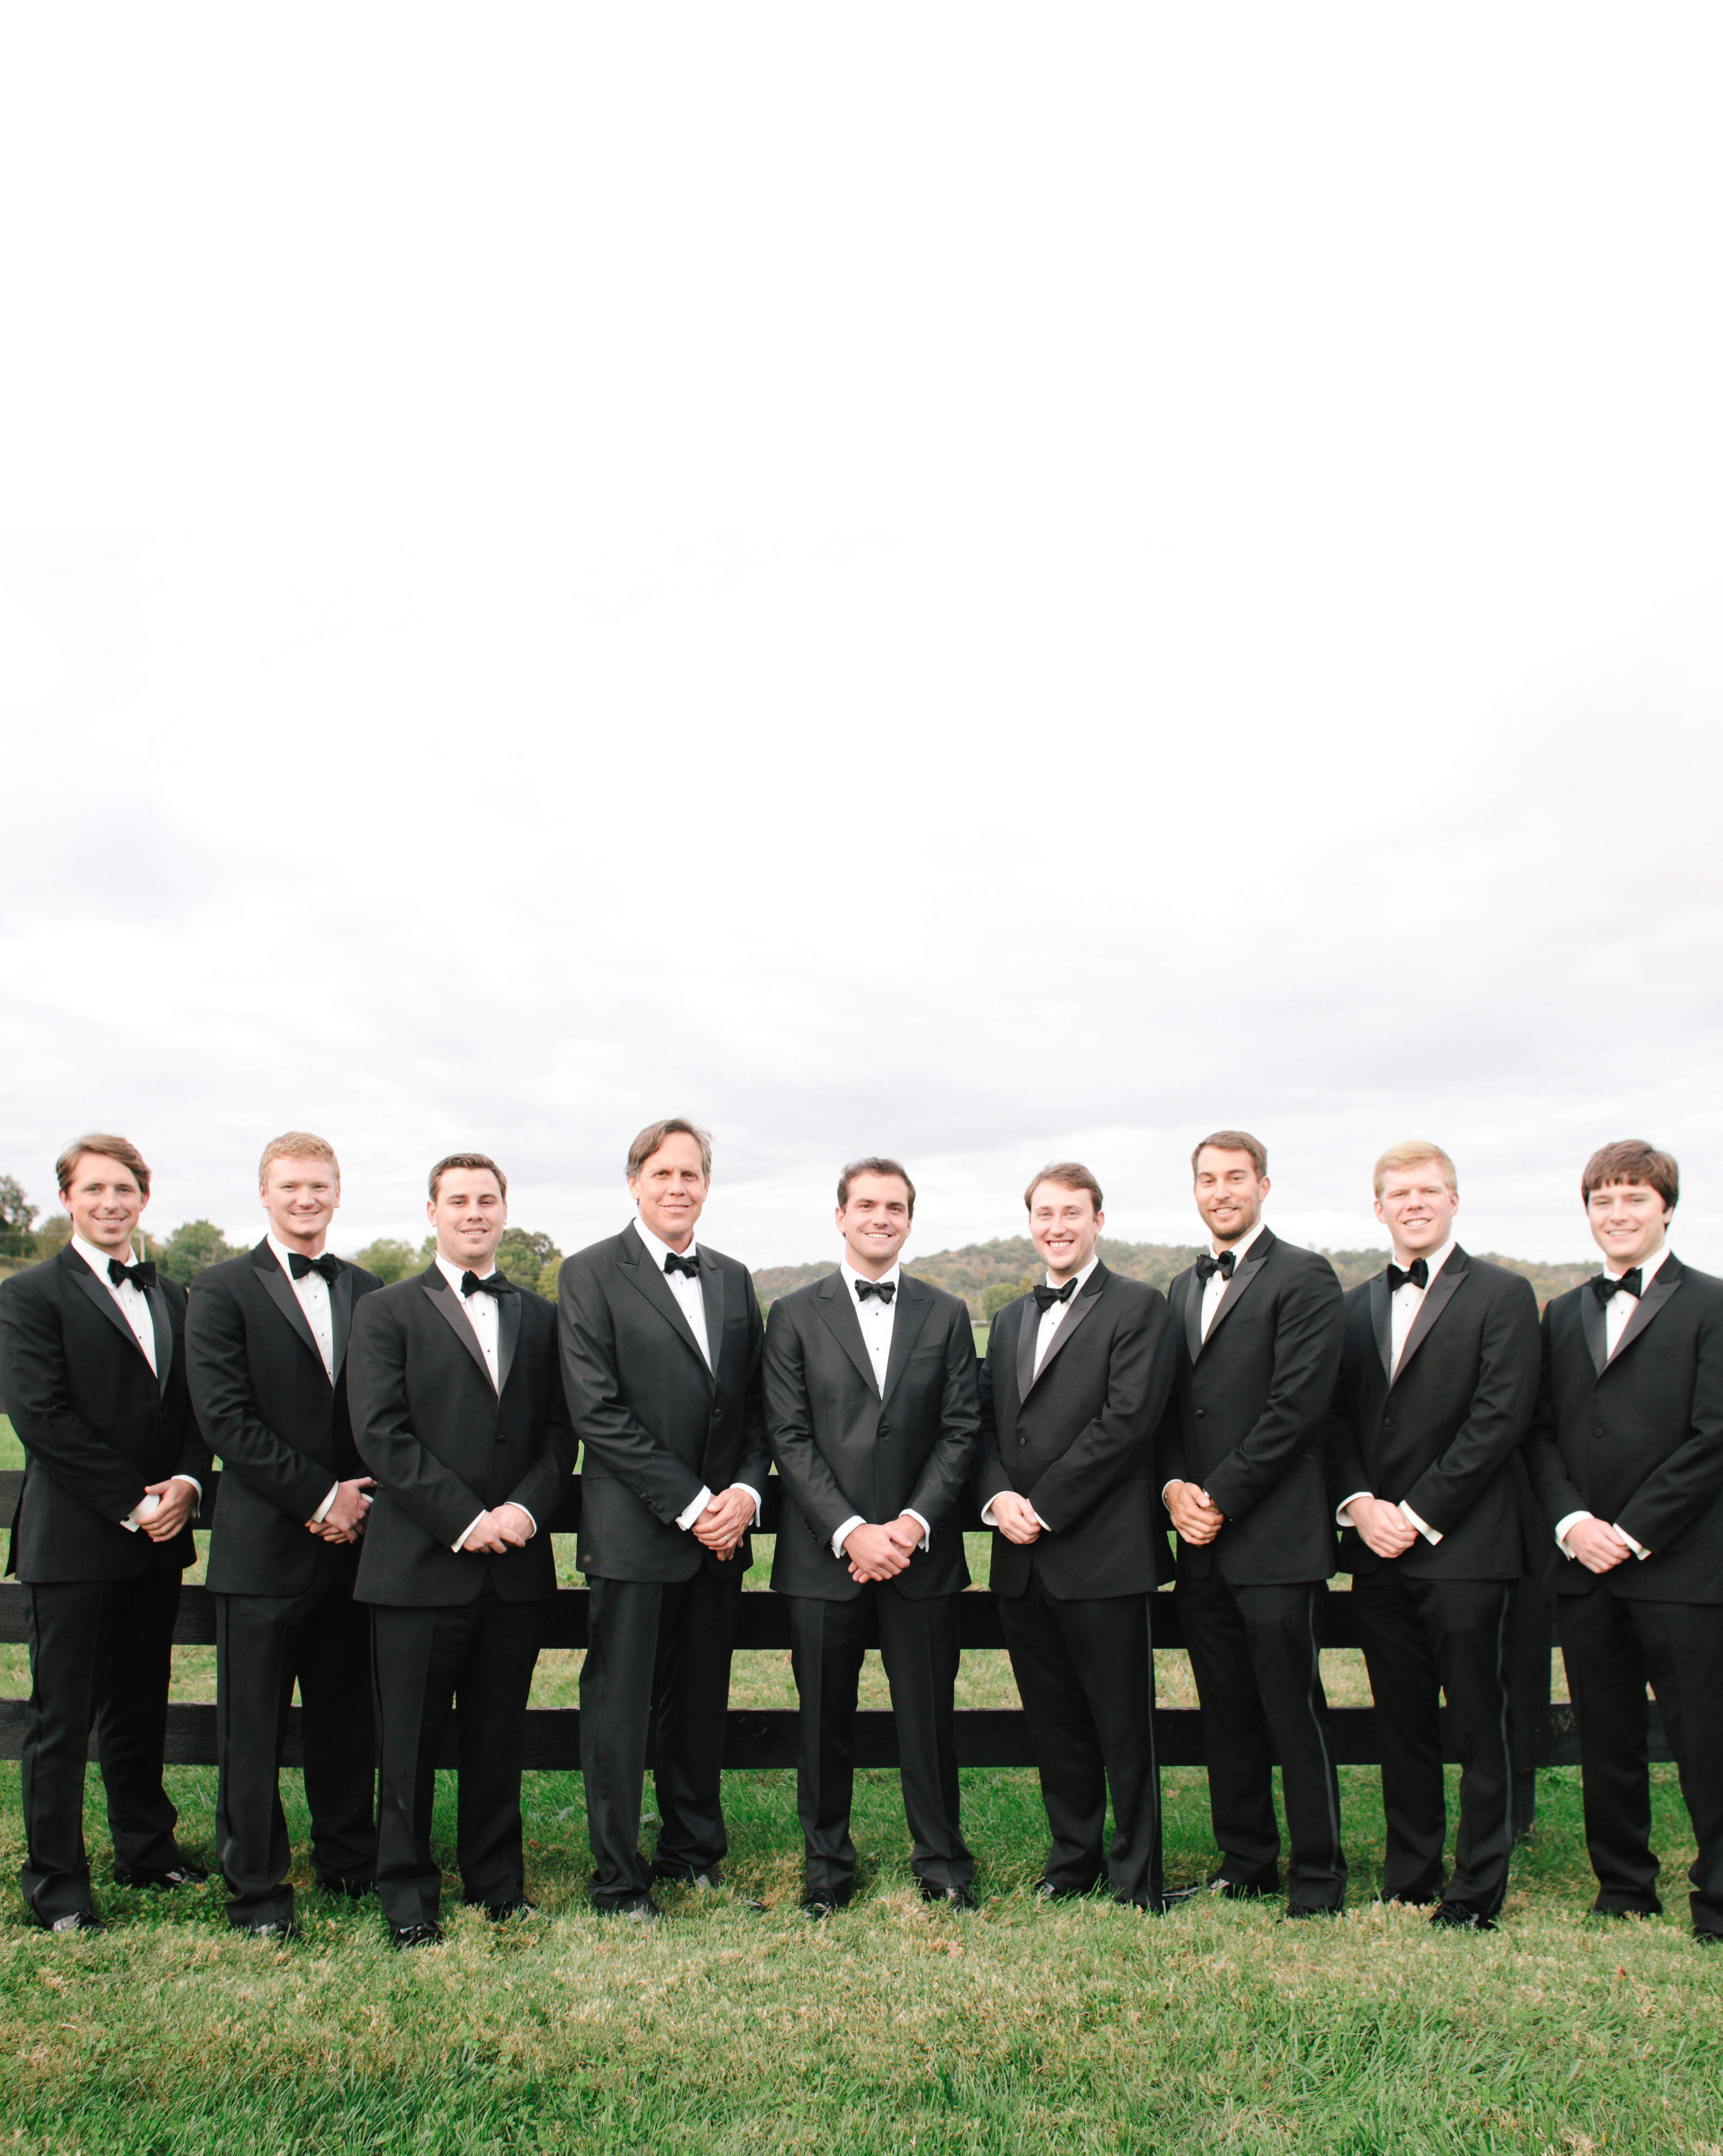 destiny-taylor-wedding-groomsmen-256-s112347-1115.jpg